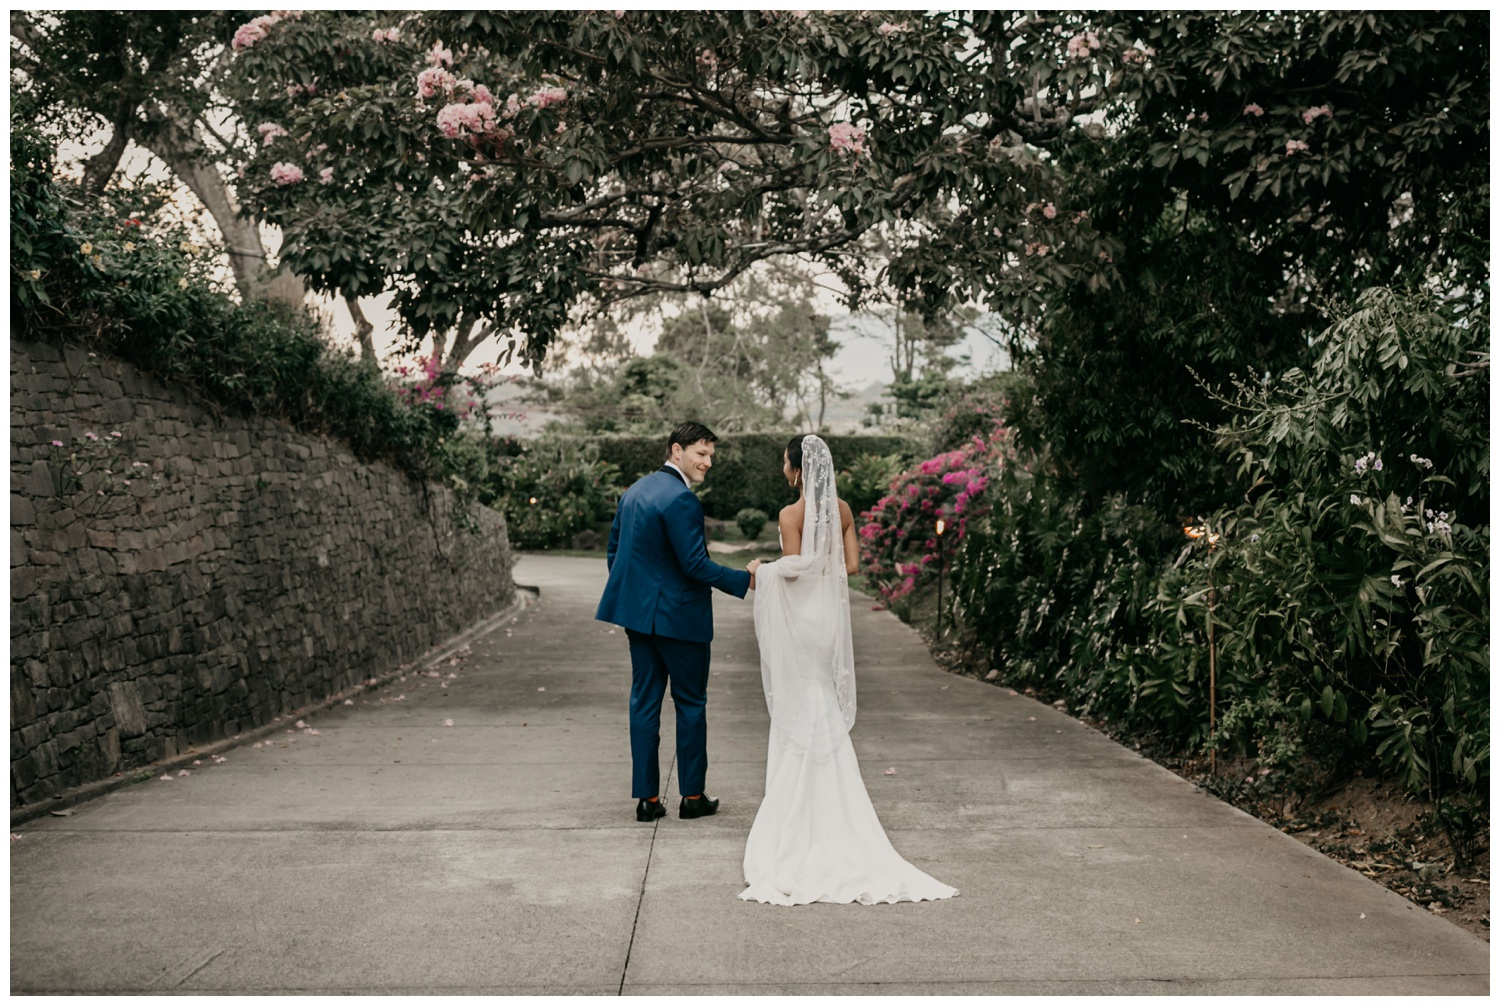 adriana_rivera_miranda_weddings_el_salvador_40.jpg